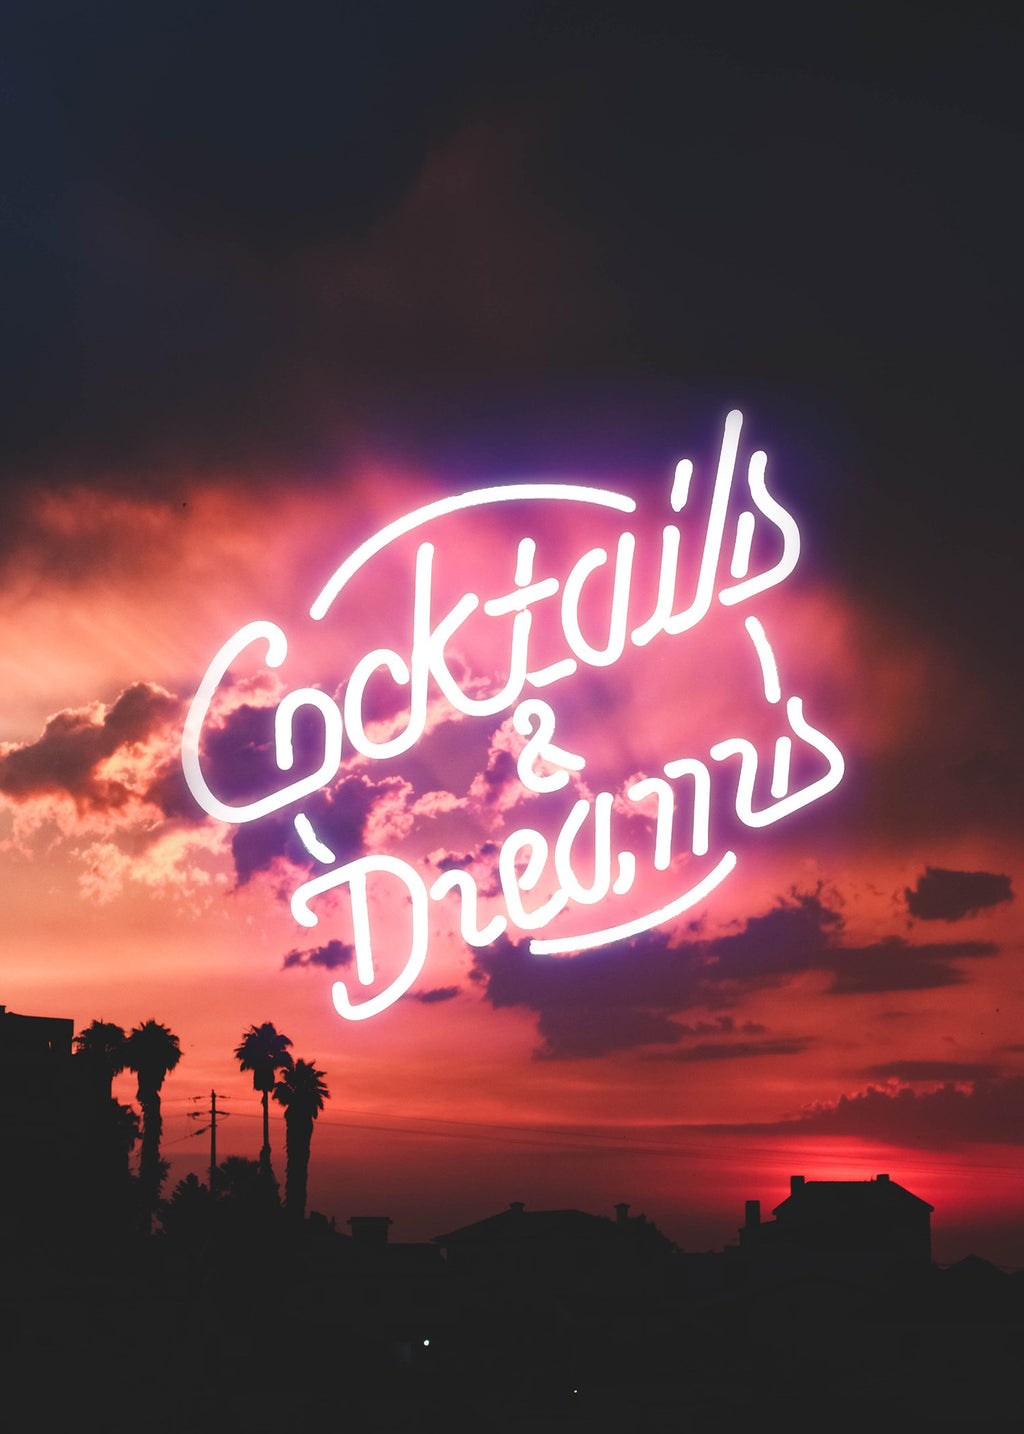 Cocktails And Dreams Sunset Neon Print